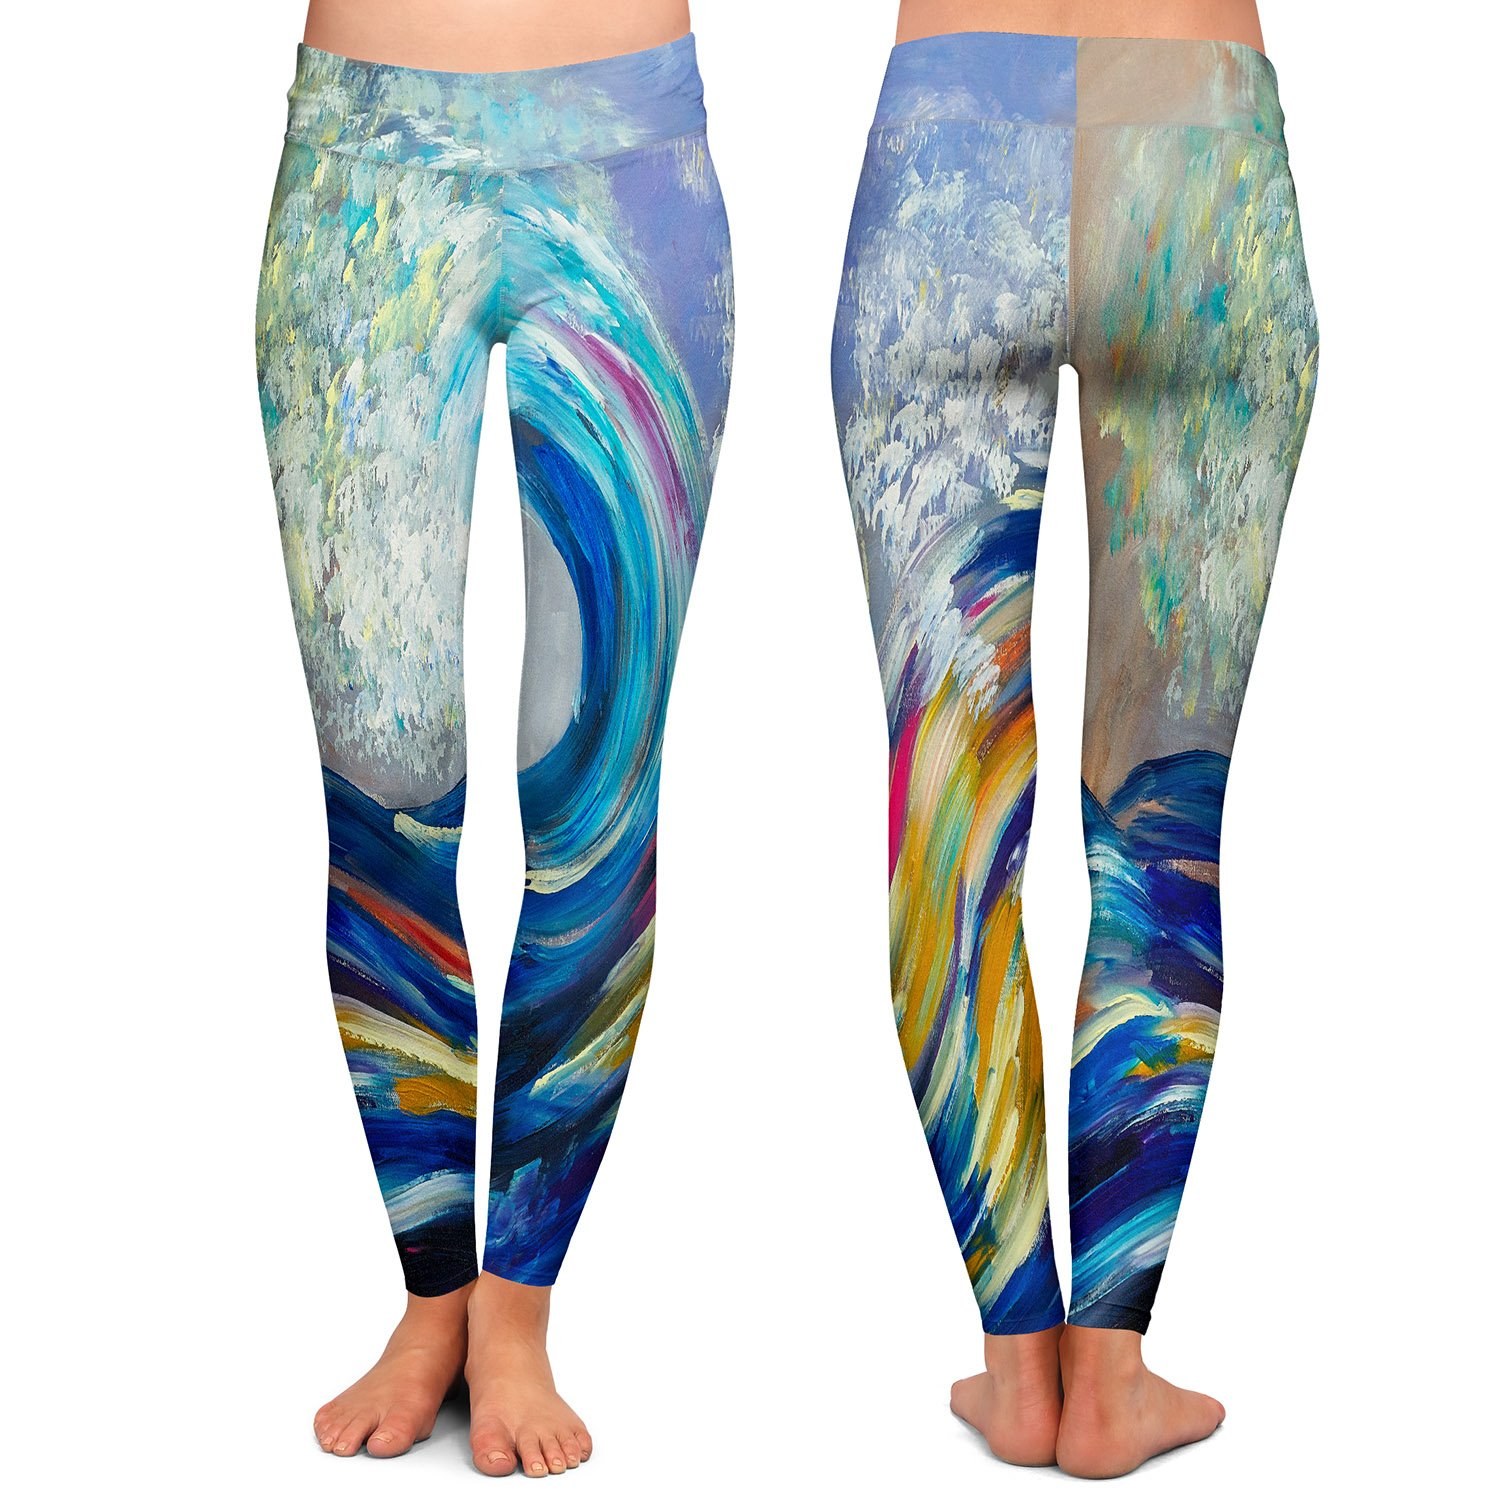 Athletic Yoga Leggings from DiaNoche Designs by Artist Lam Fuk Tim Wave Rolling Rainbow